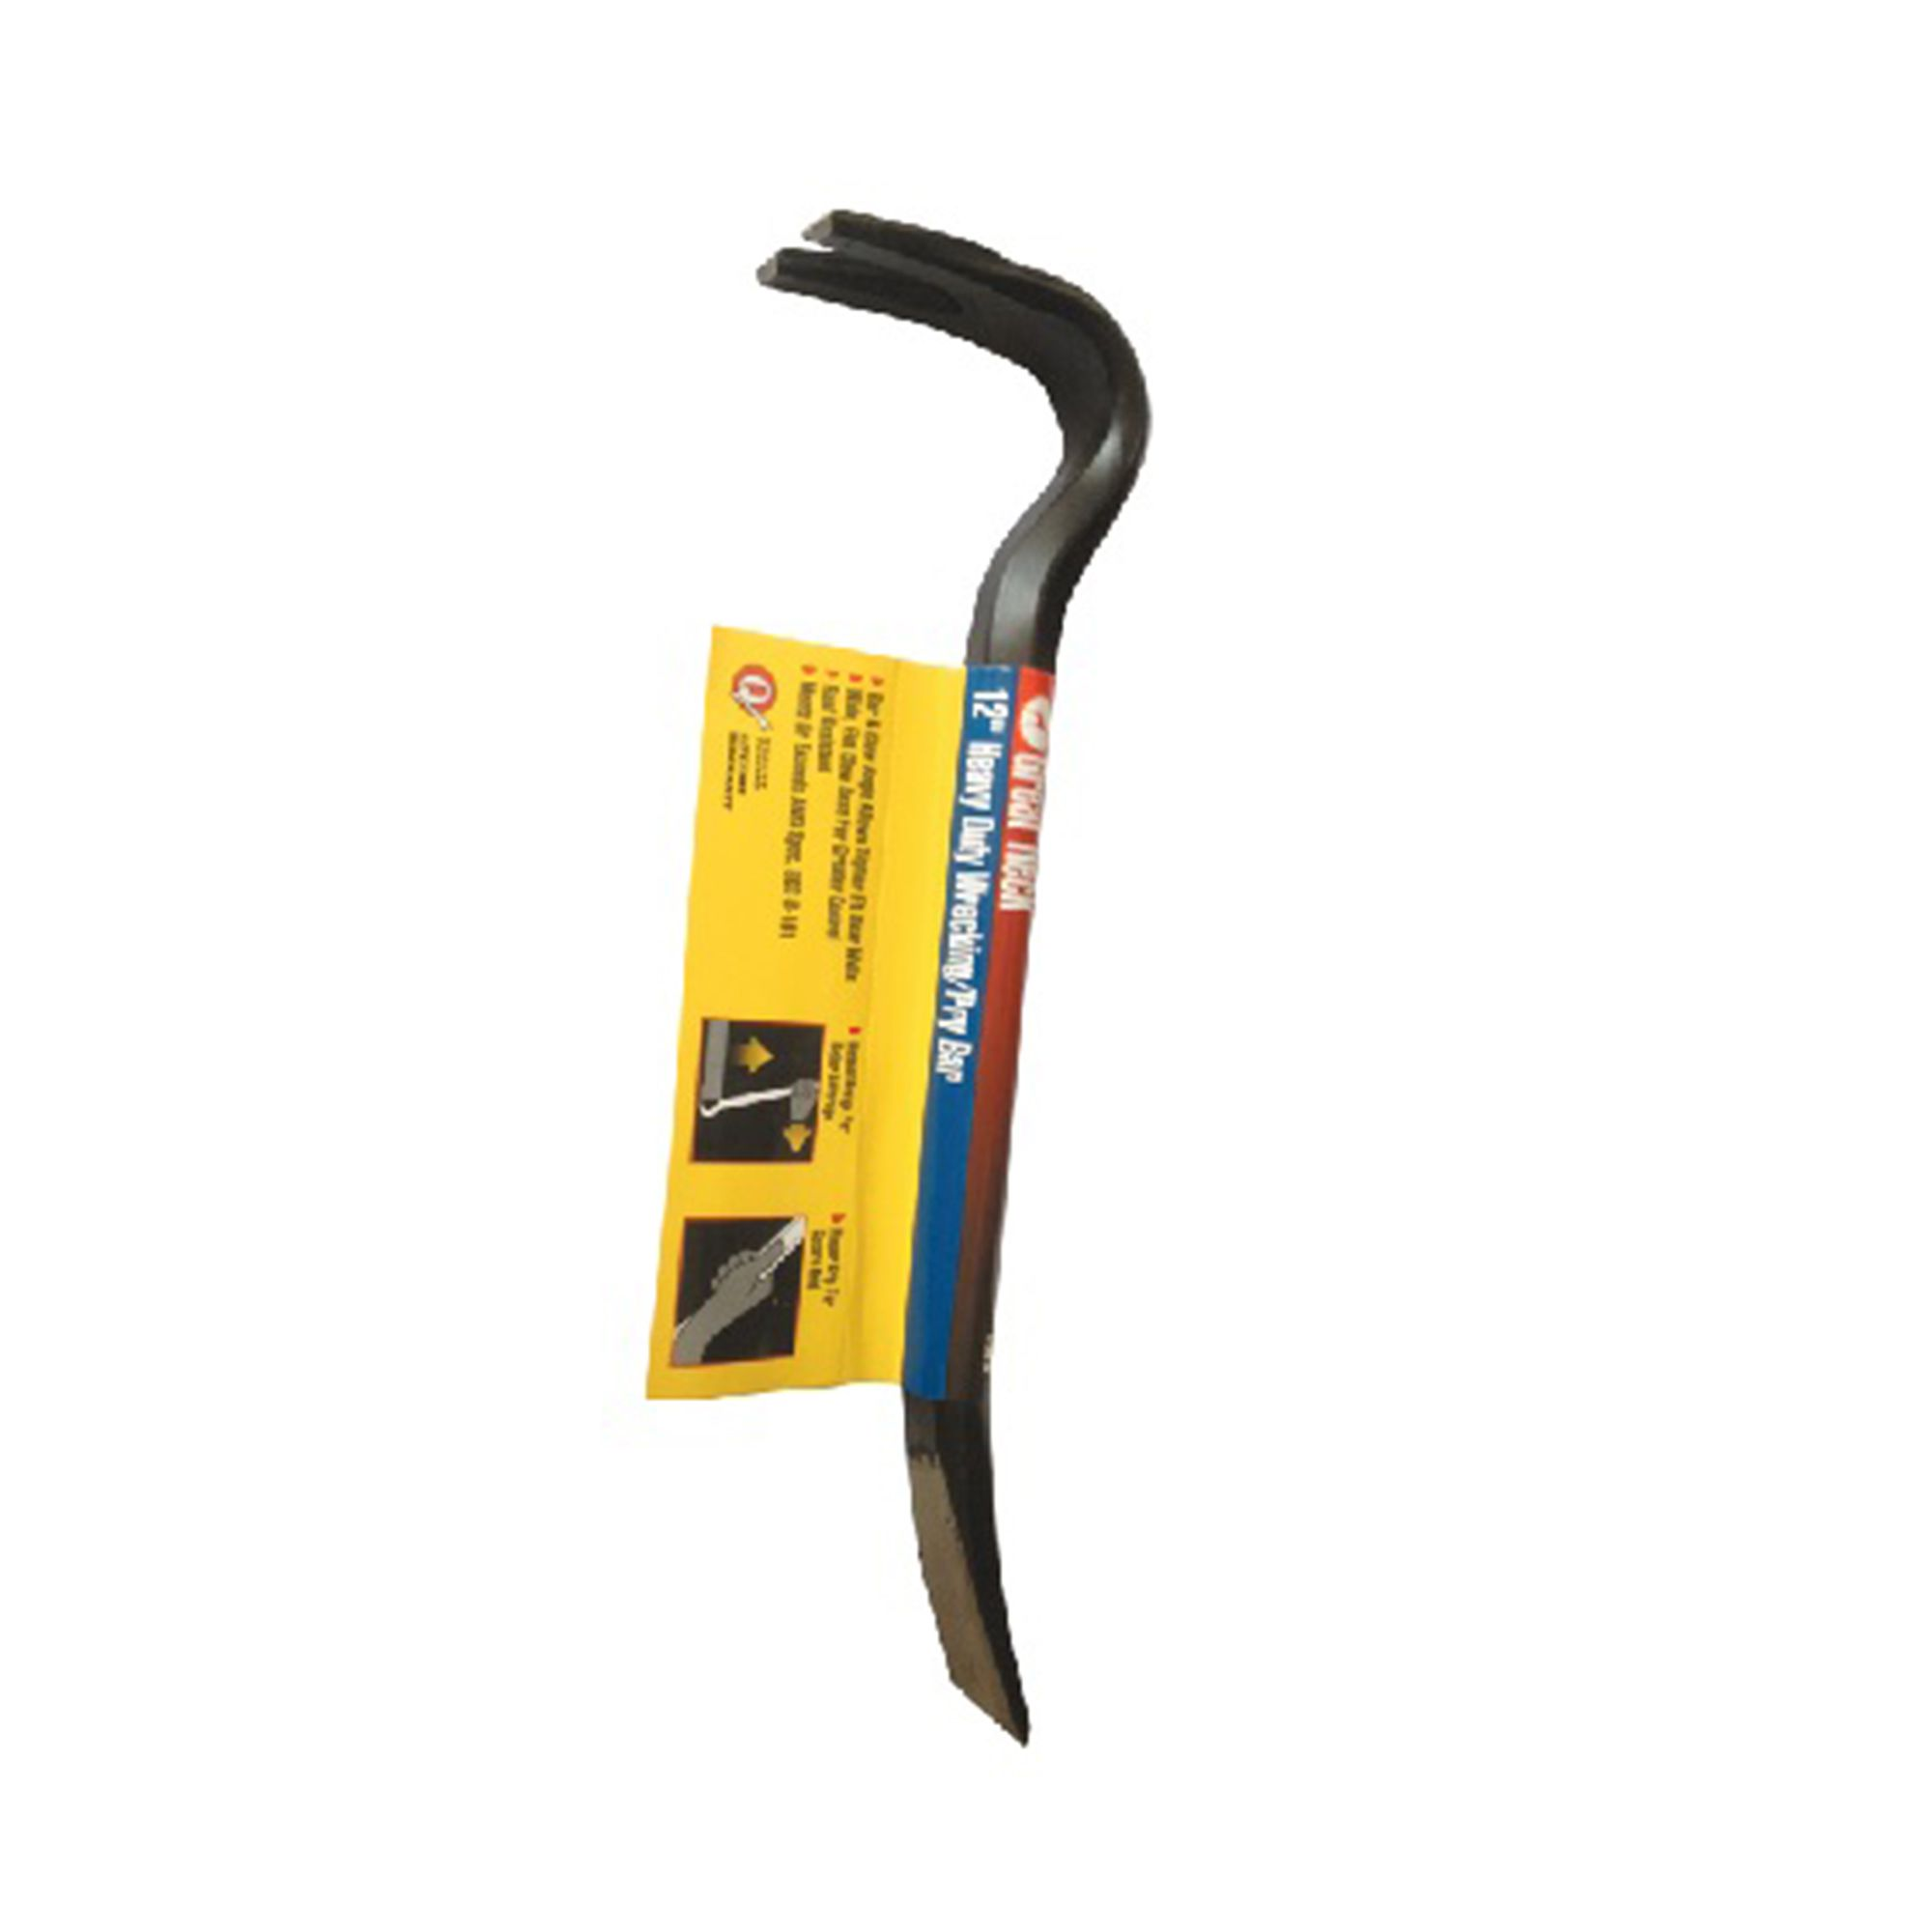 Great Neck Heavy Duty – Wrecking/Pry Bar – 12 Inch – GNK-50052